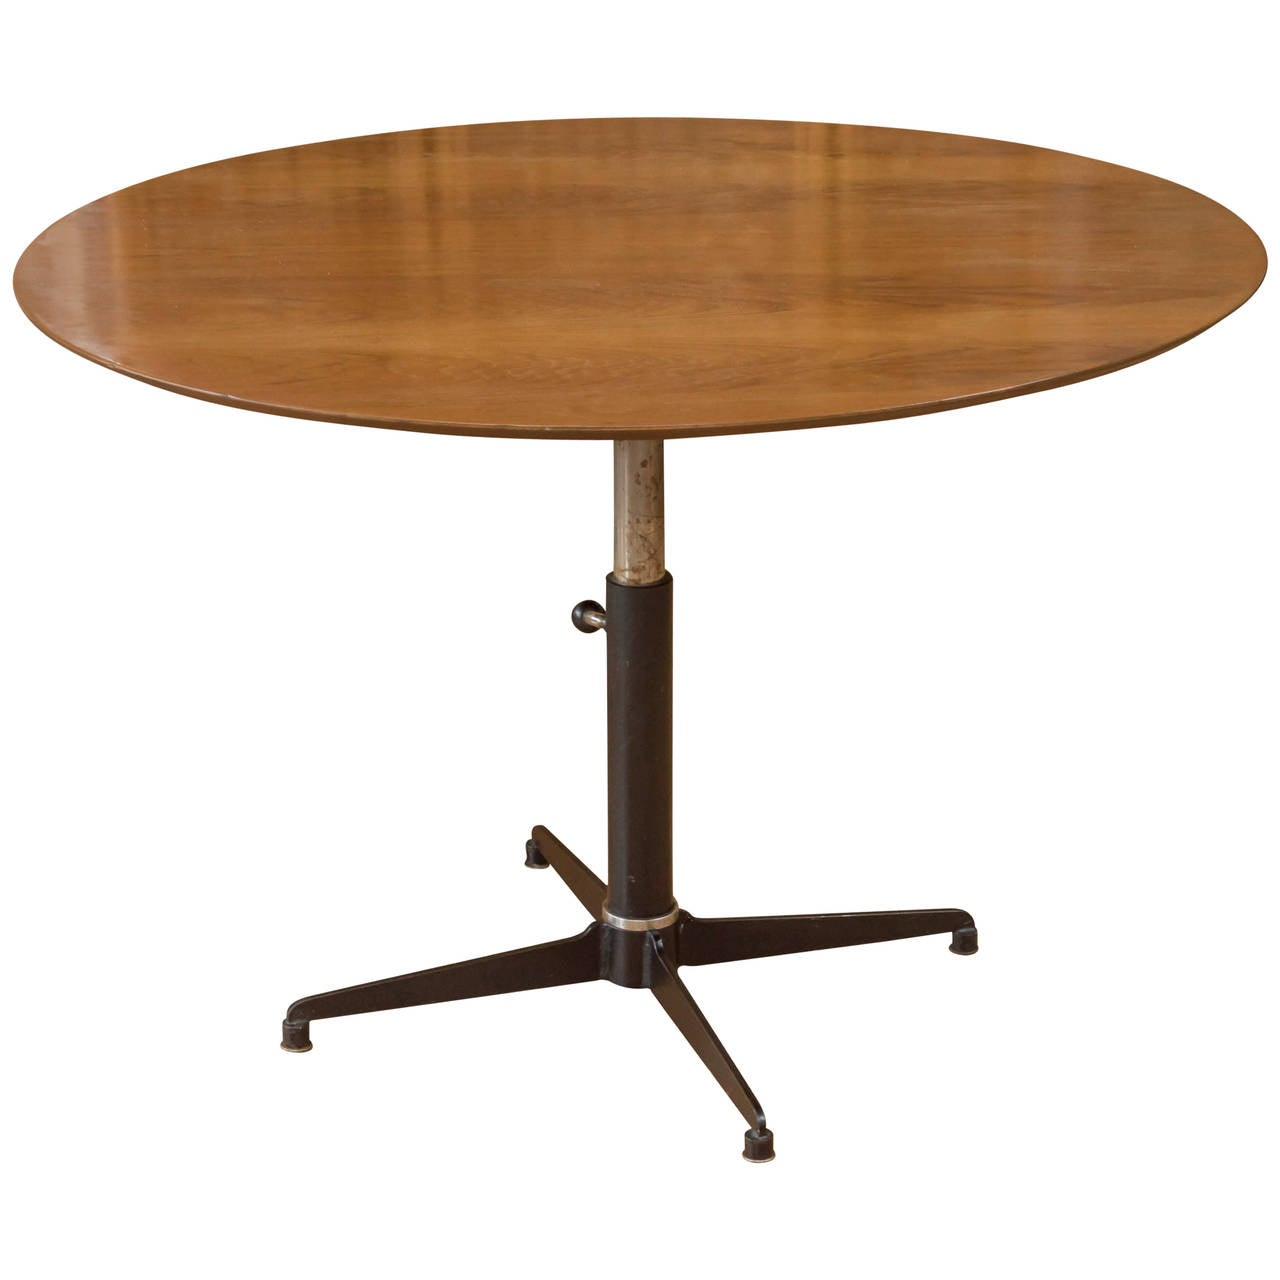 Round Coffee Table With Adjustable Height: Danish Teak Adjustable Height Cocktail Table At 1stdibs